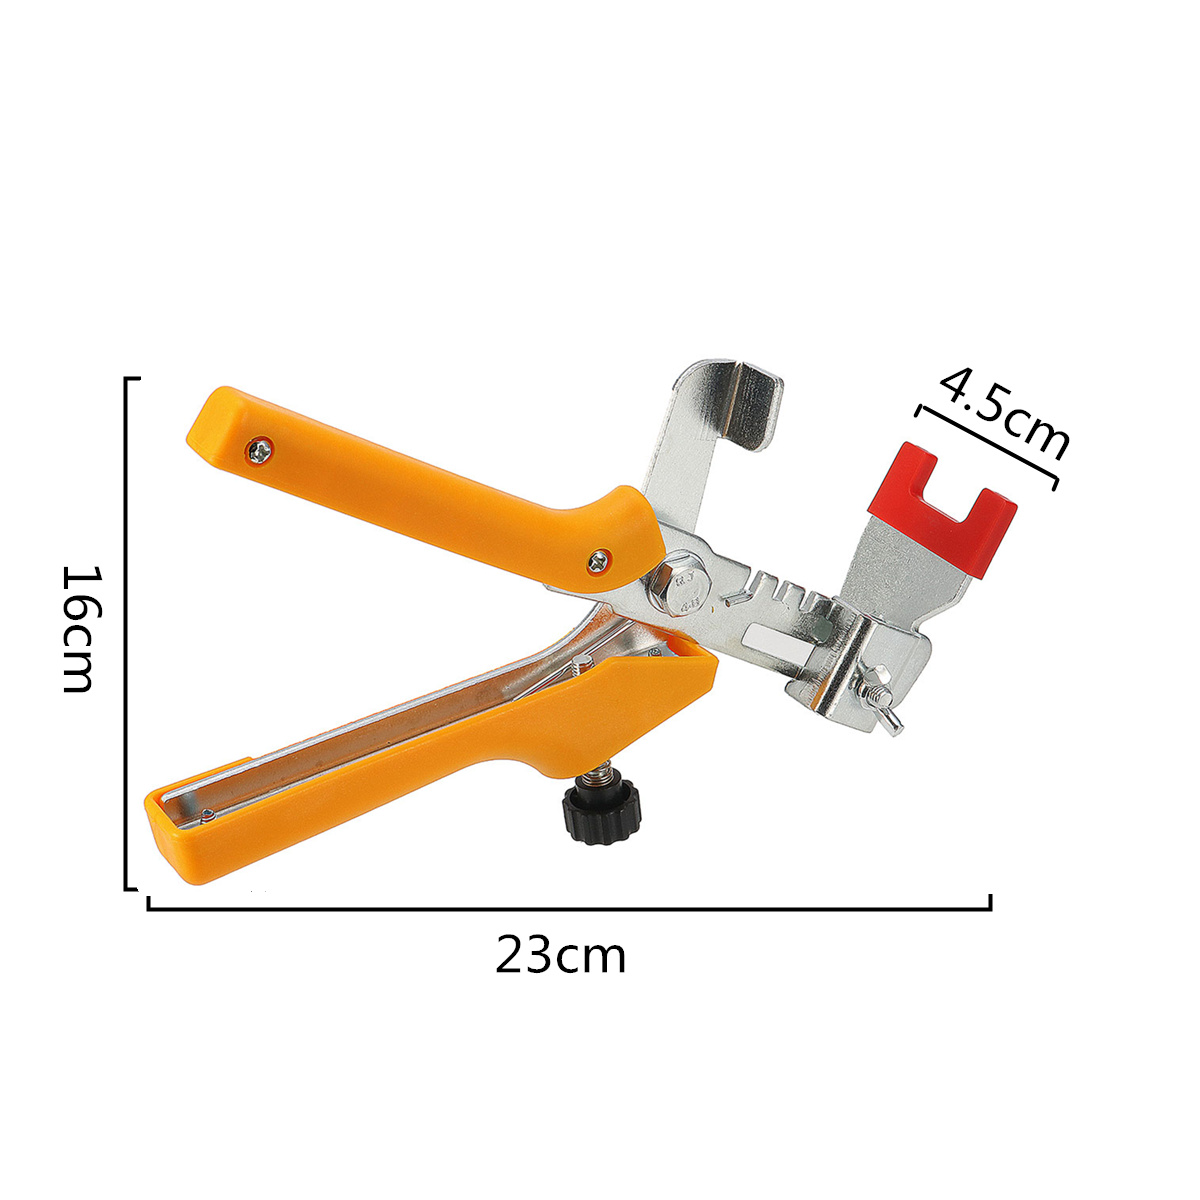 Dl d03f floor pliers tool for ceramic tile leveling system tiling dl d03f floor pliers tool for ceramic tile leveling system tiling installation fit wedges and clips in tools from home garden on aliexpress alibaba dailygadgetfo Images